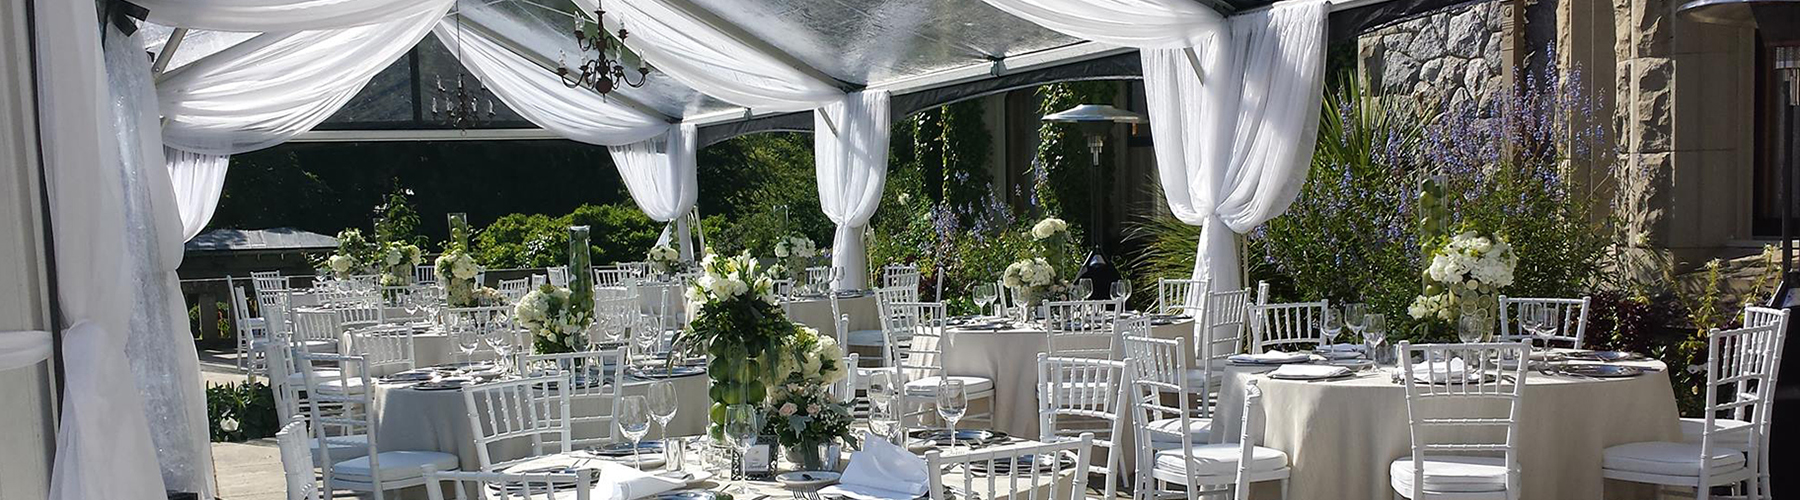 folding chair rental vancouver worlds best office black and white party rentals homeeditor2019 01 07t15 00 30